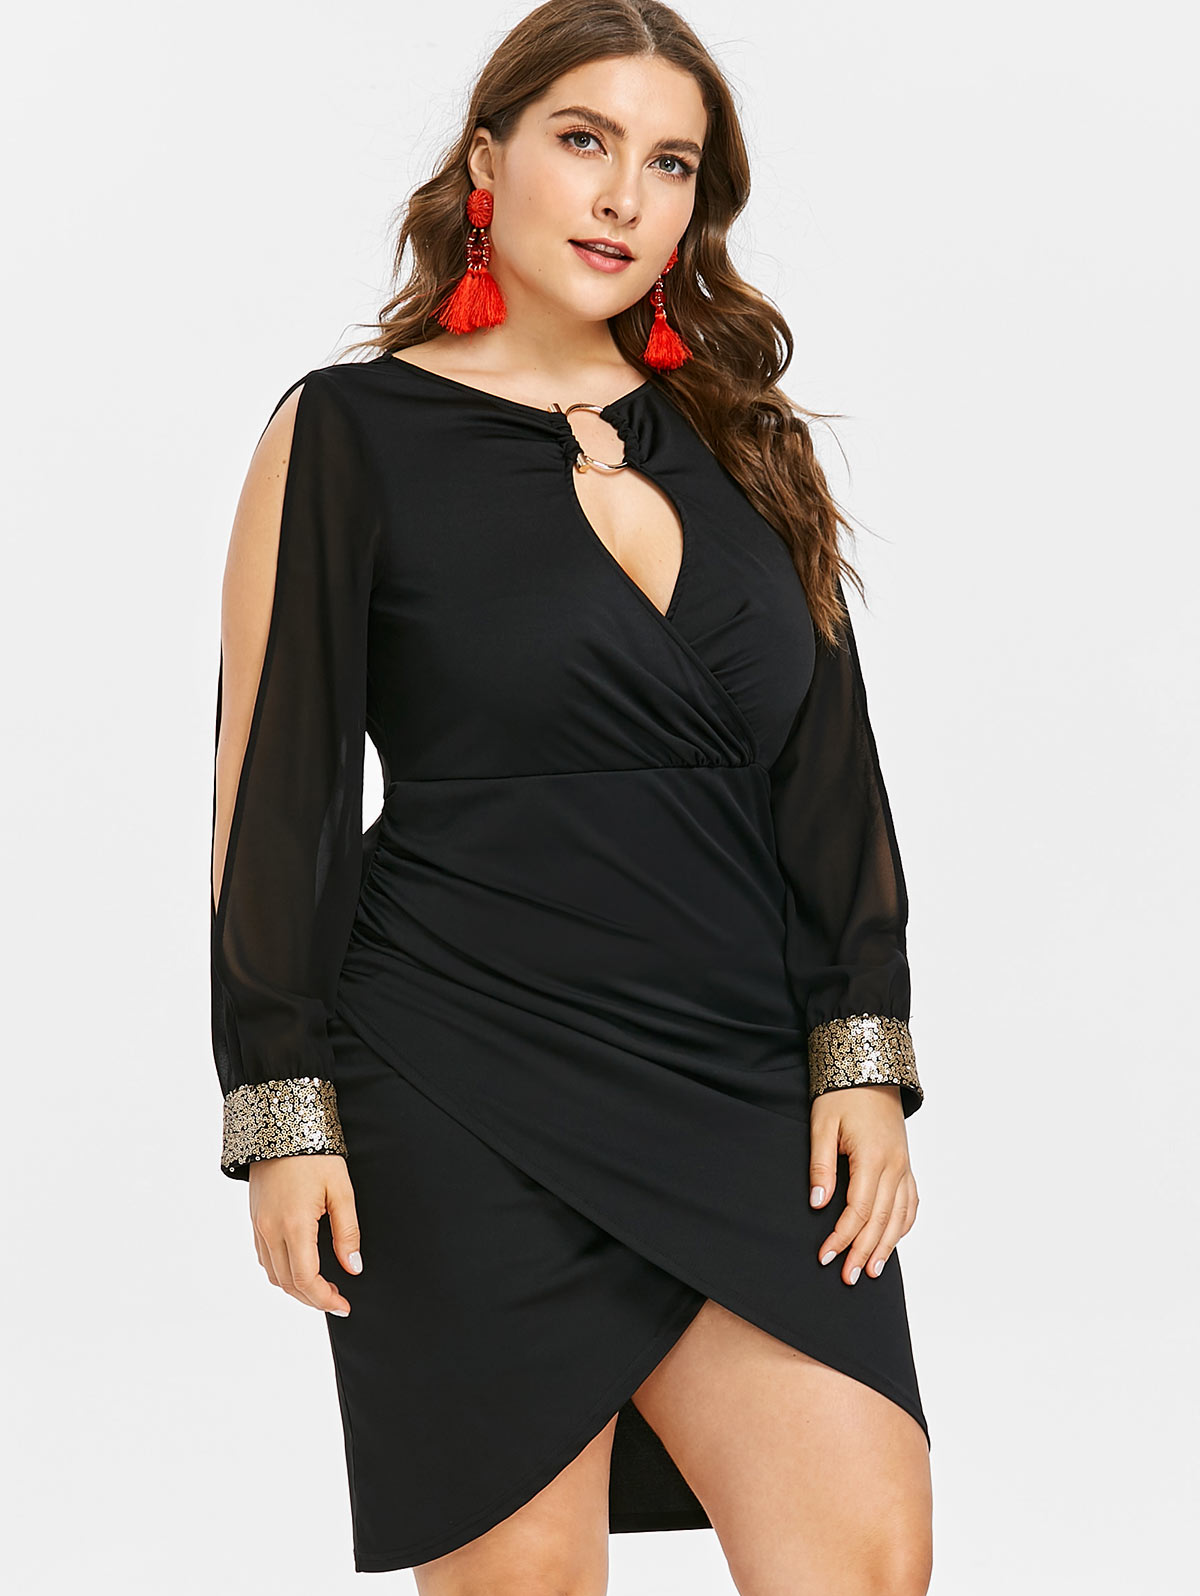 Detail Feedback Questions about Wipalo Slit Sleeve Plus Size O Ring ... d8fd2855c225